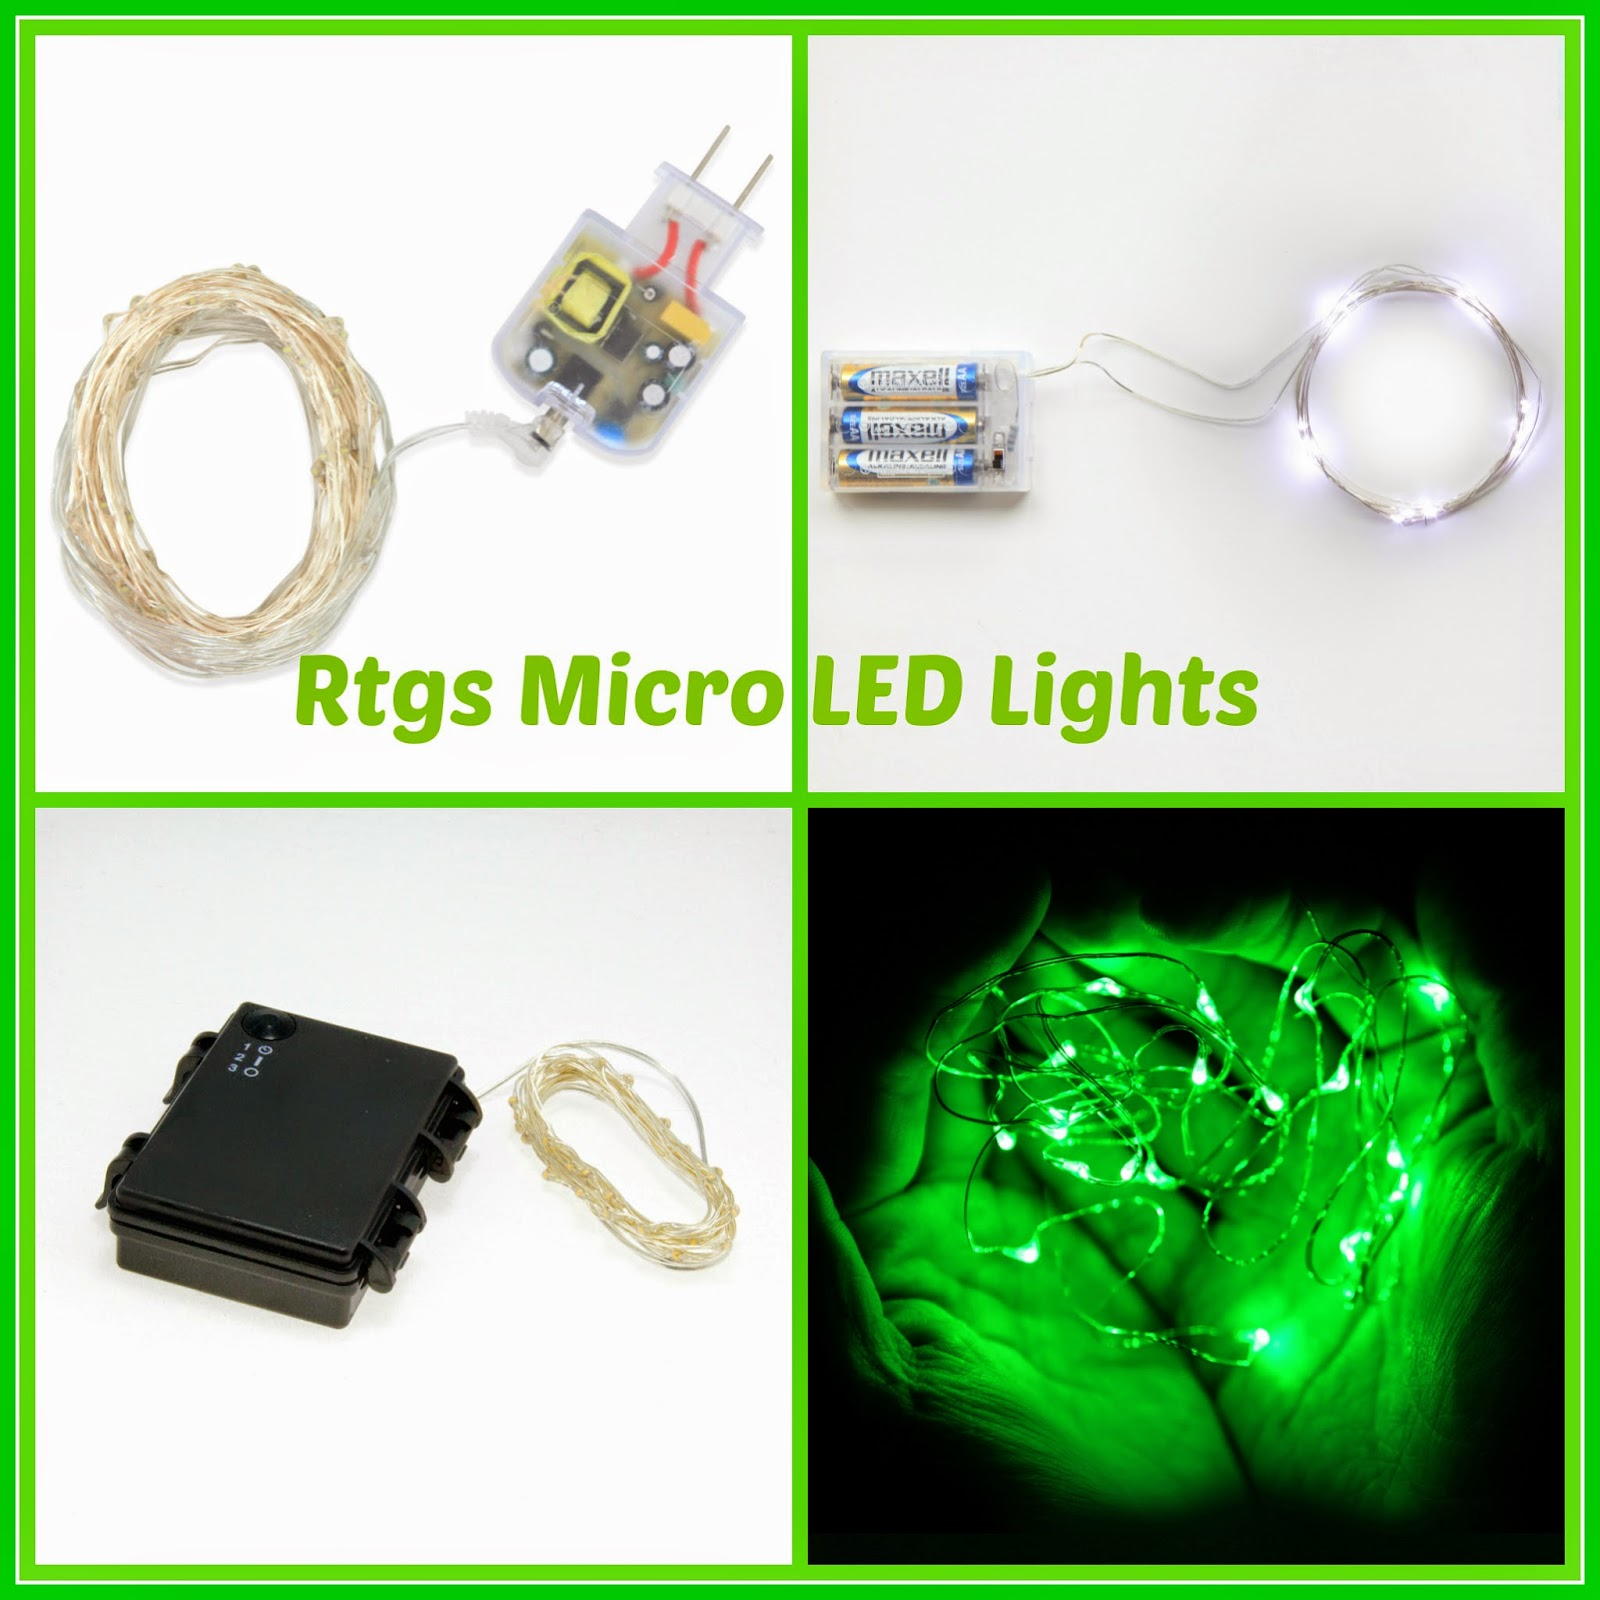 Micro LED String Lights Giveaway